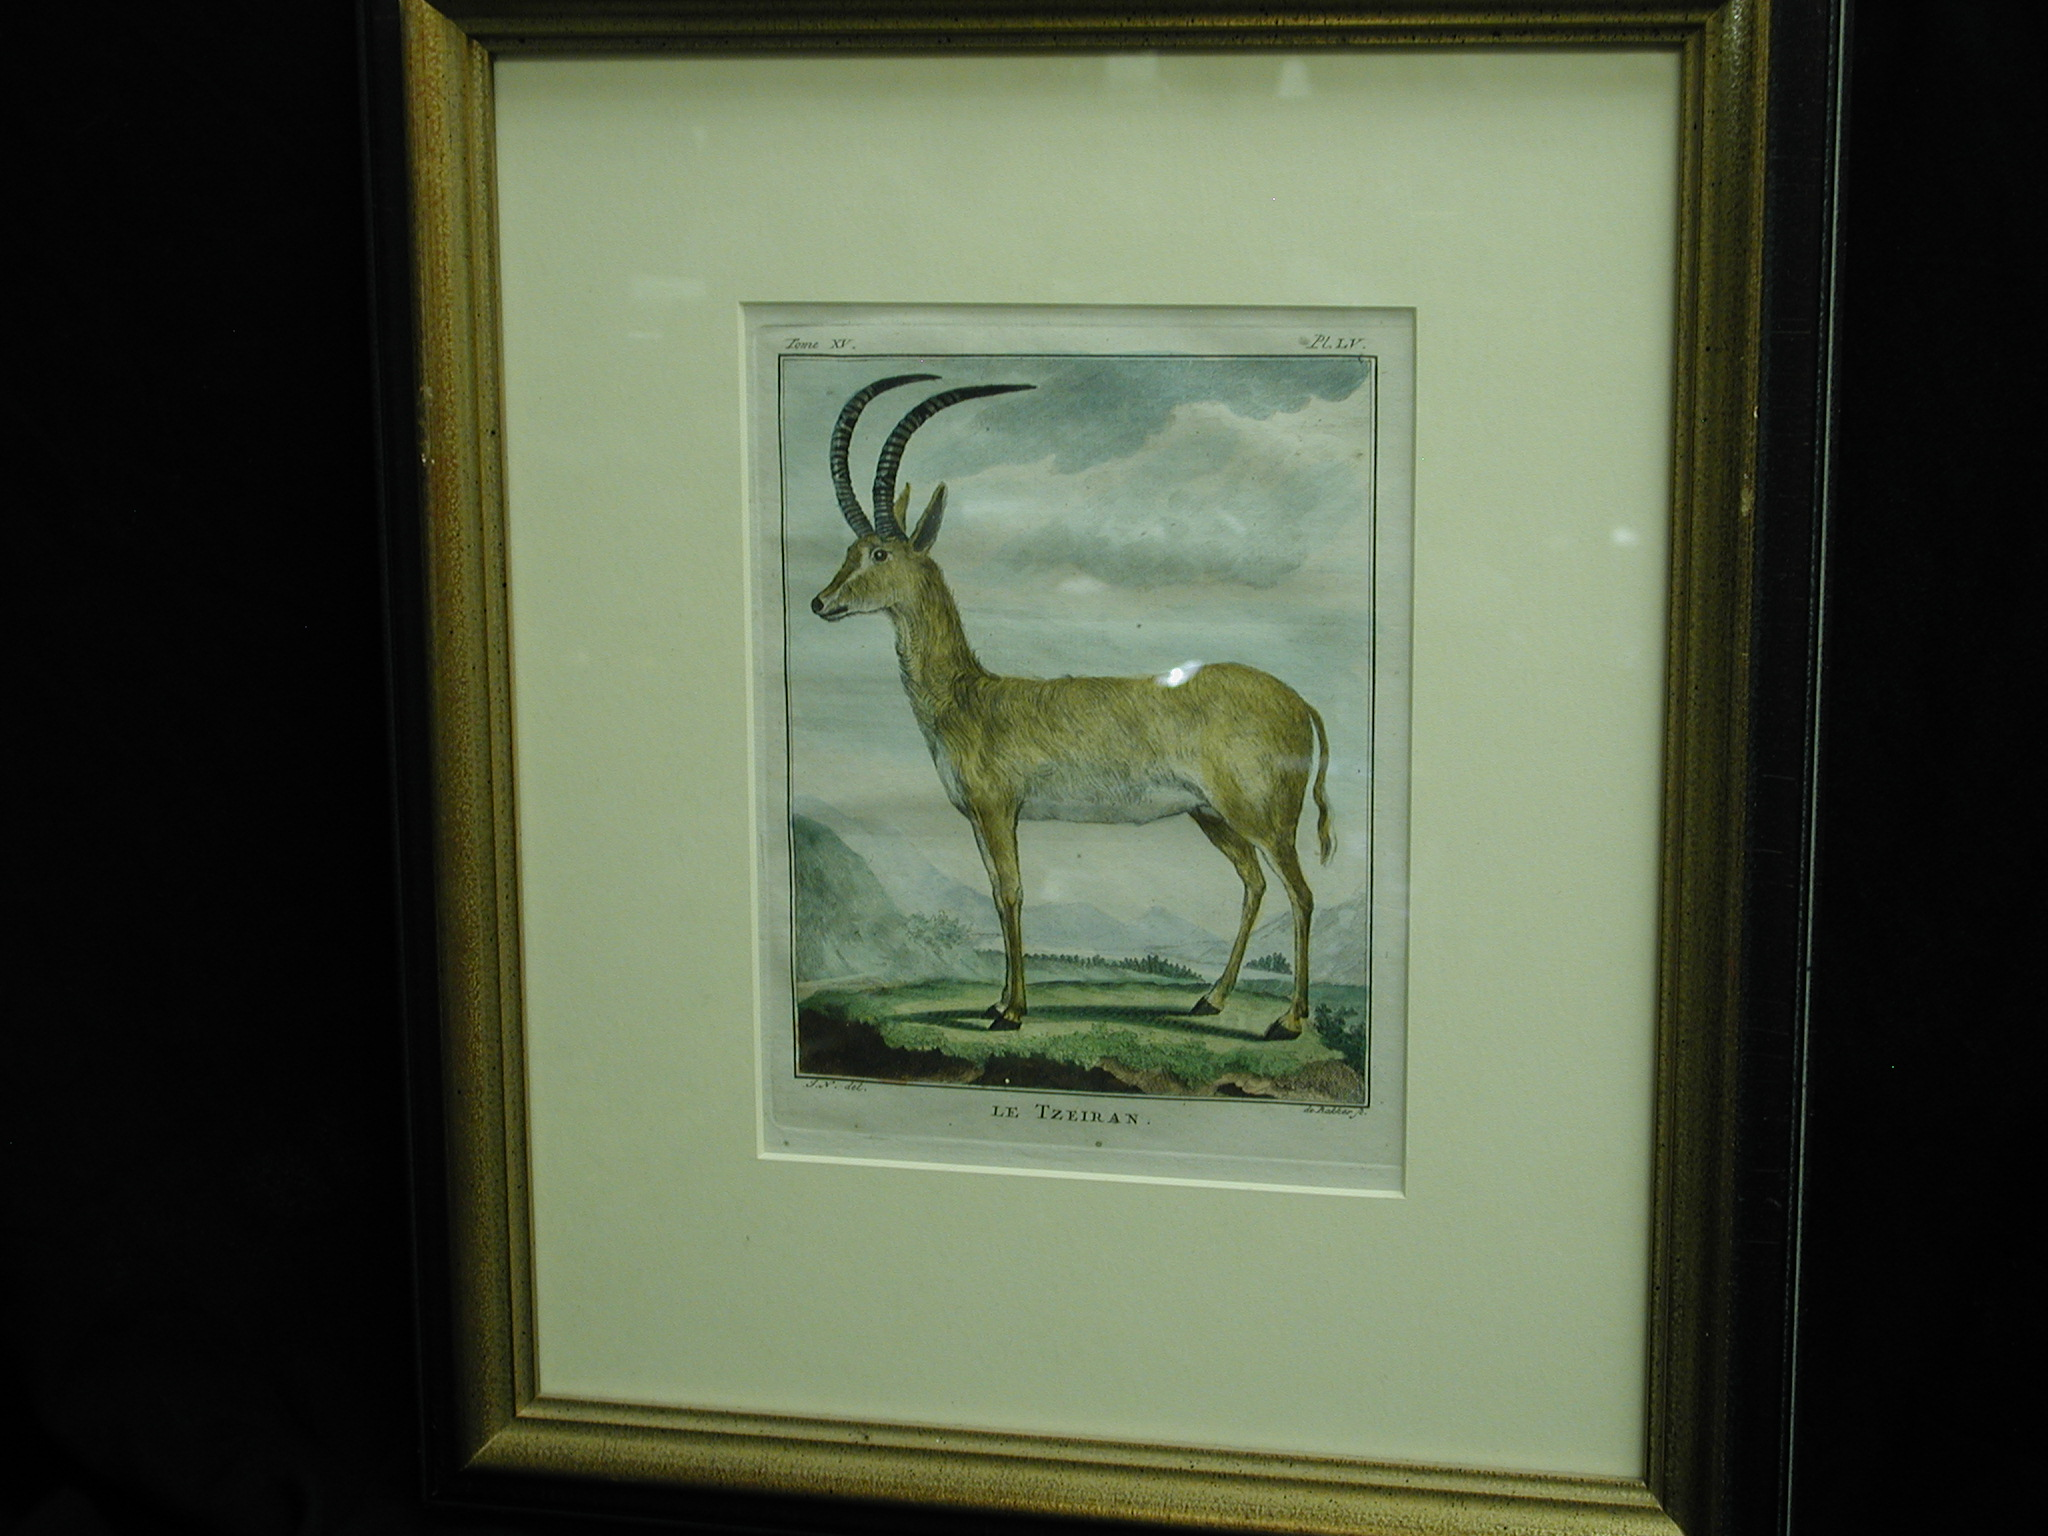 18th C. French Engraving hand colored Le Tzeiran Zoology framed Print